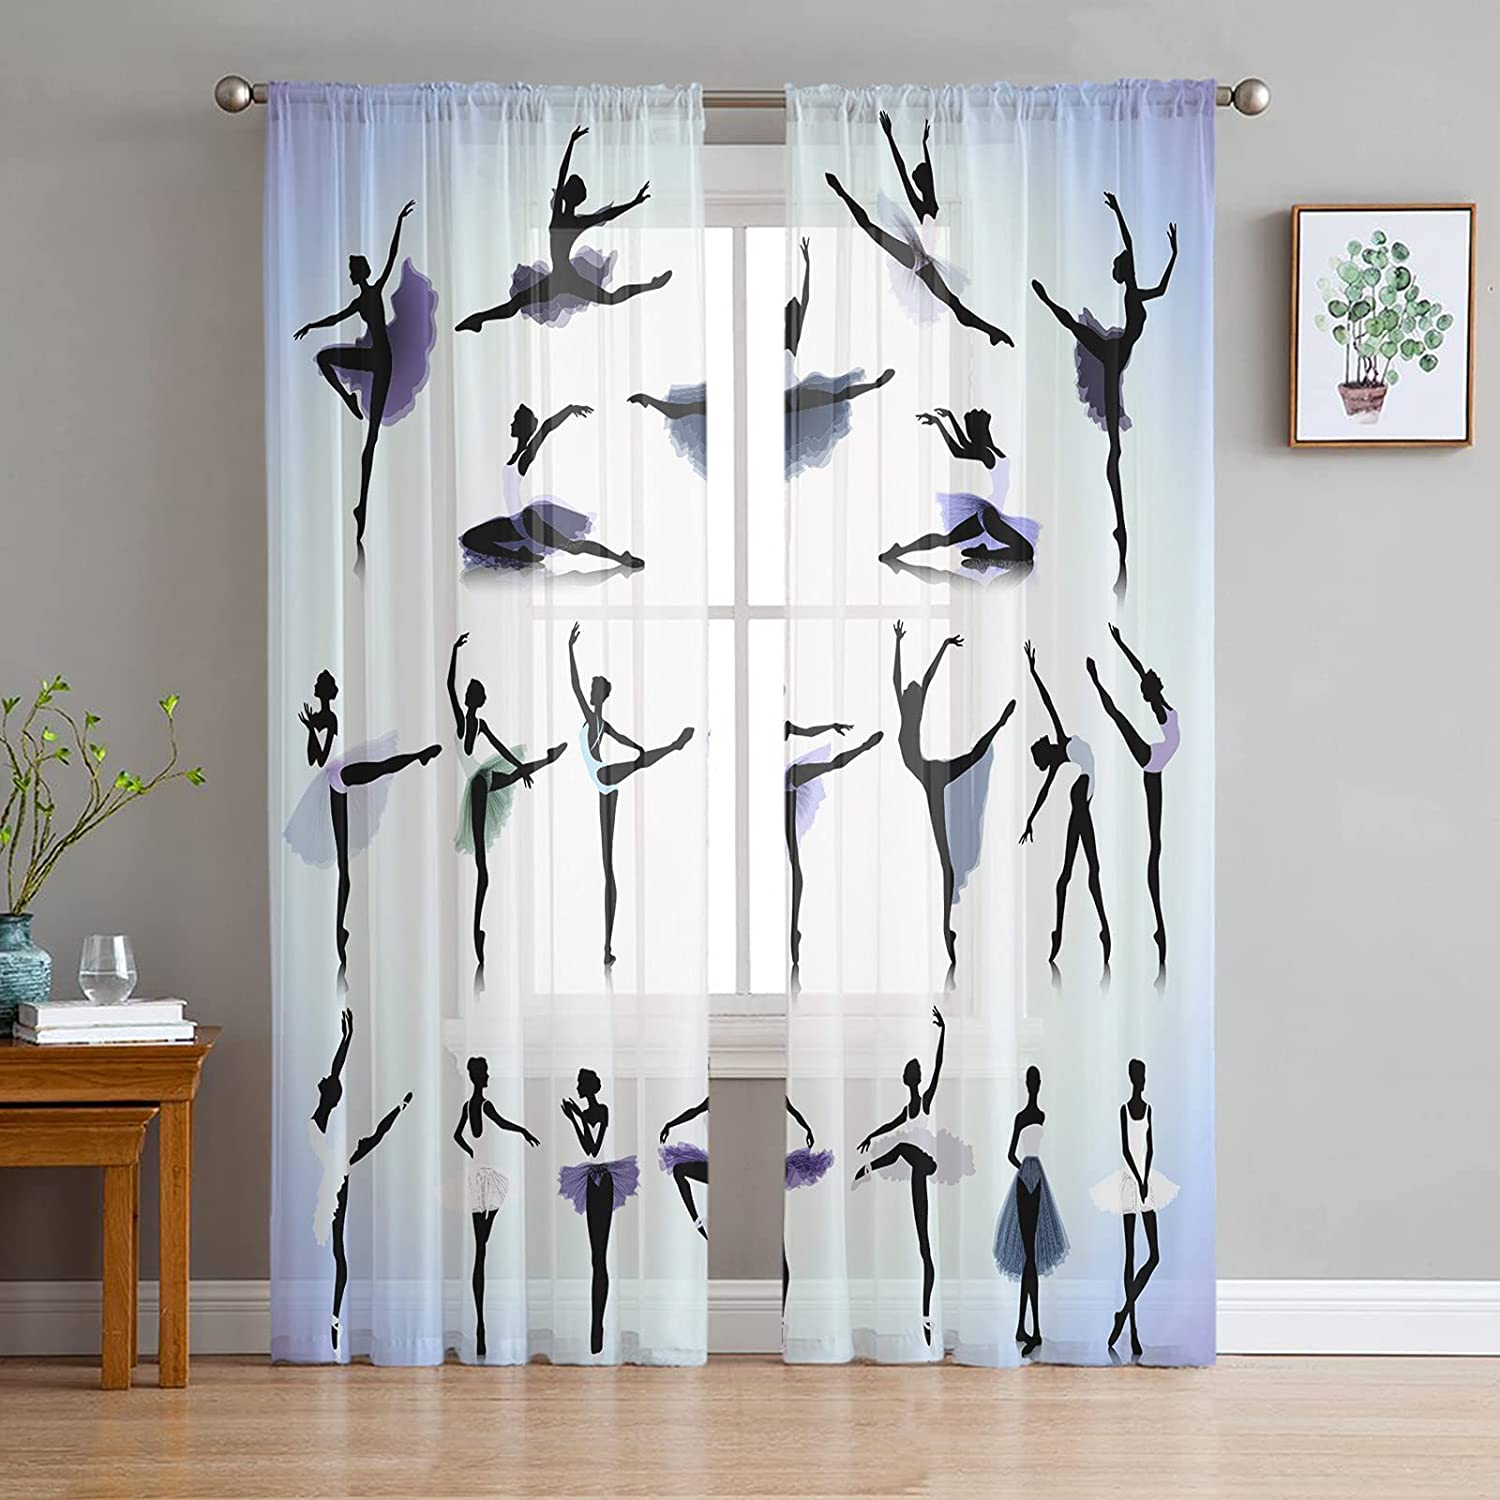 FAMILYDECOR Sheer Curtains Popular shop is the lowest price challenge 96 inches Long Voile W Grommet Max 71% OFF Drapes